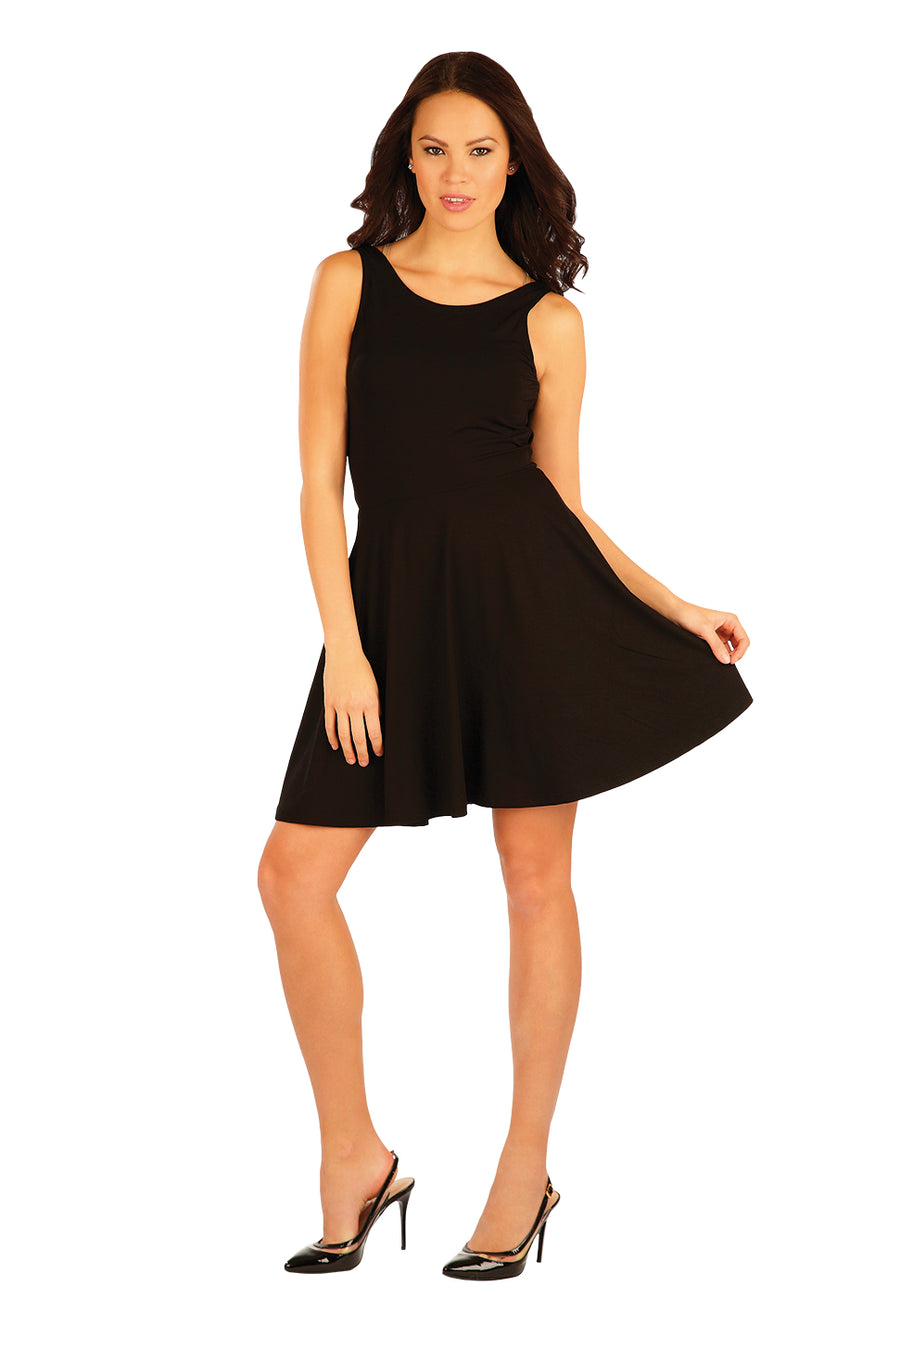 Women's Sleeveless Black Dress - onelike